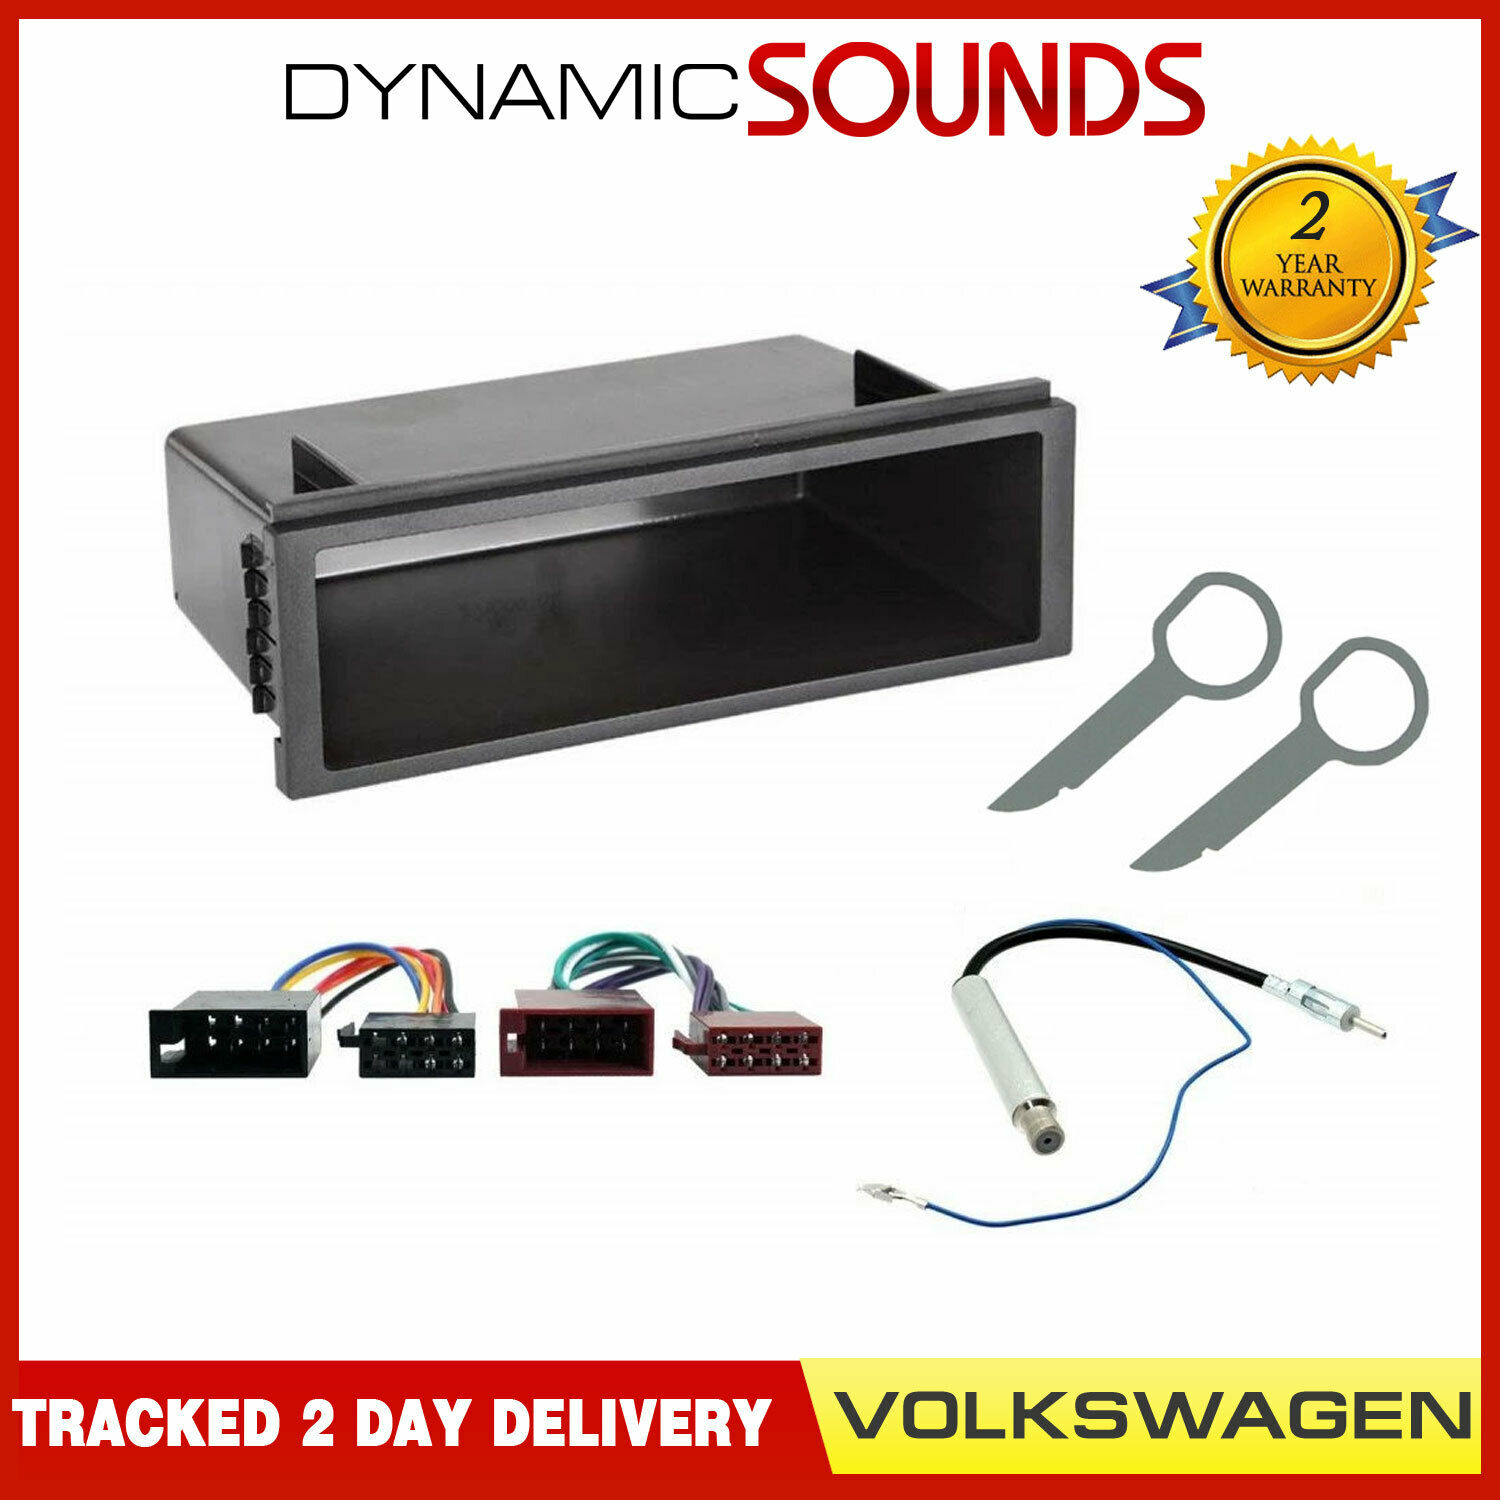 Car Cd Stereo Fitting Kit Wiring Harness Iso Aerial Adaptors Vw Golf Mk4 Mkiv Adaptor Panel Plate Fascia Facia 1 Of 2free Shipping See More